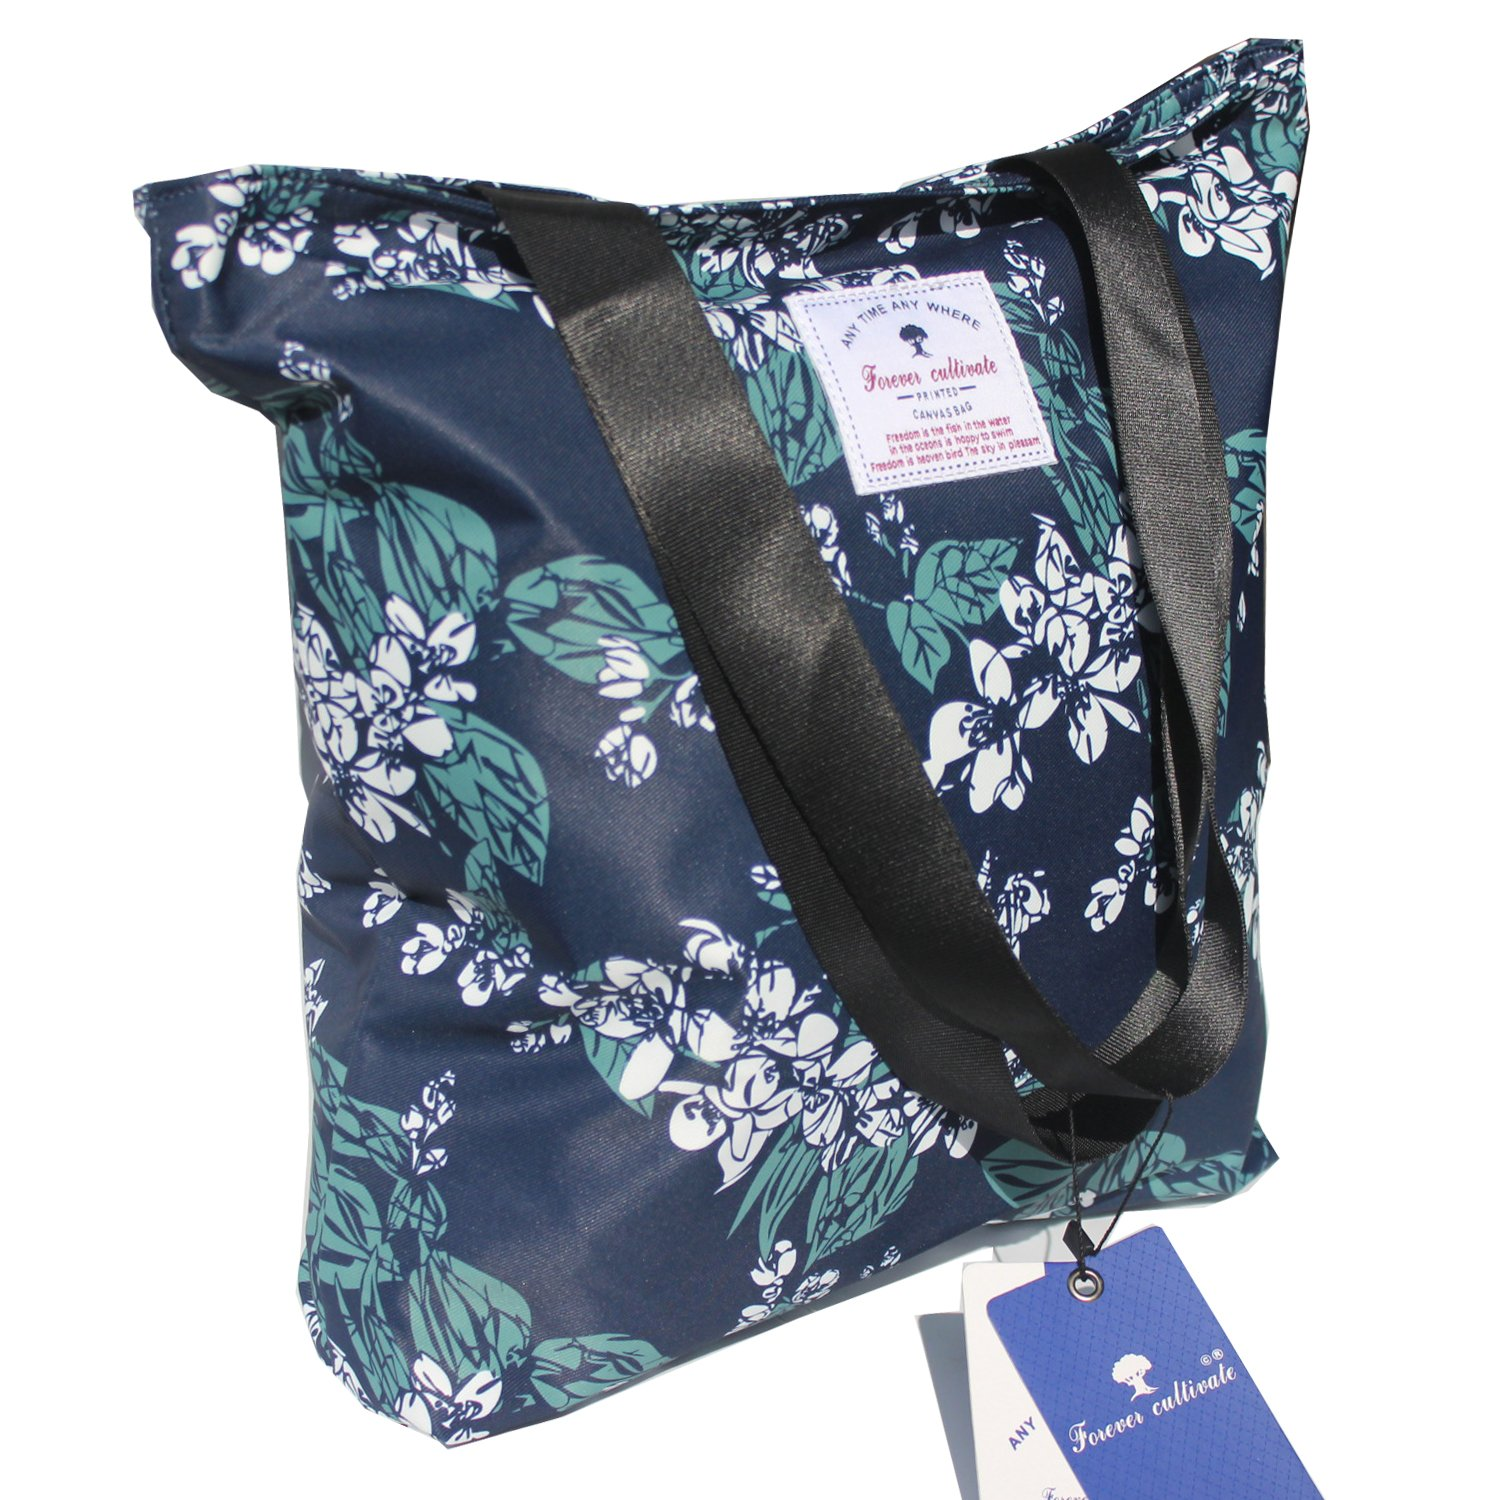 Original Floral Tote Bag Shoulder Bag for Gym Hiking Picnic Travel Beach  product image a61472da92